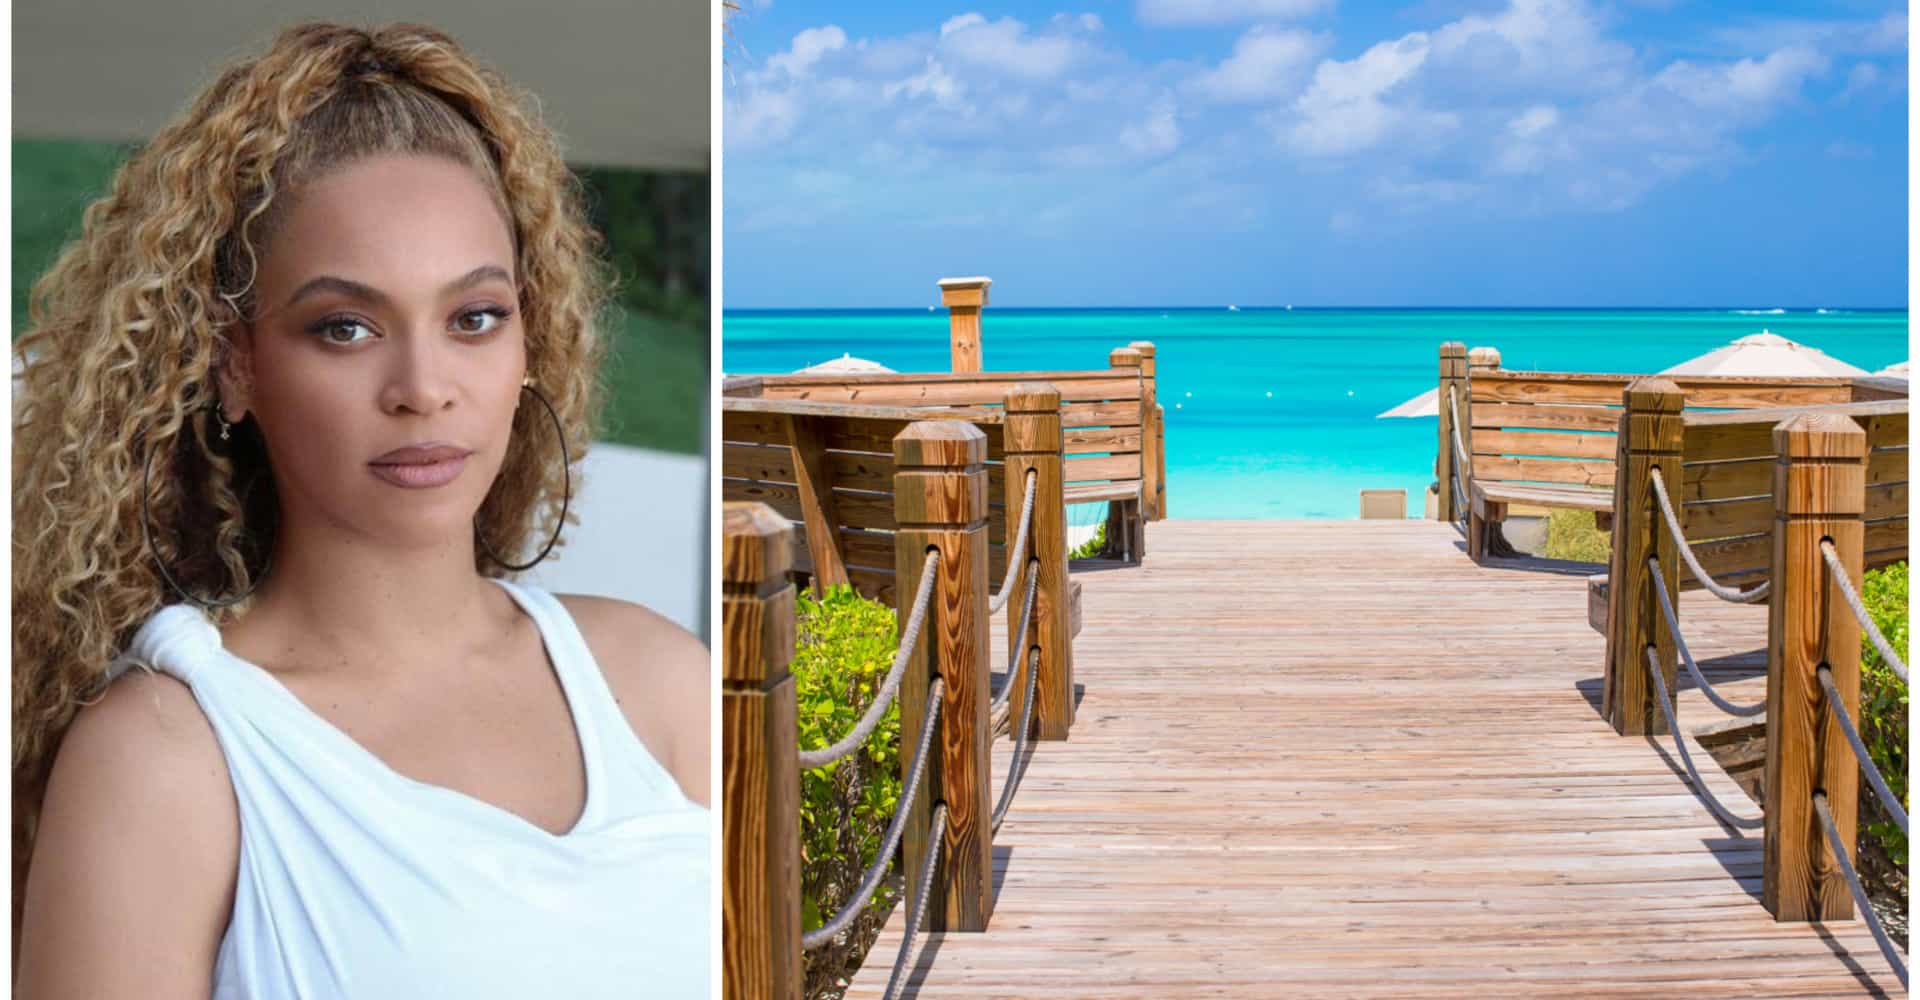 The world's most exclusive celebrity vacation destinations